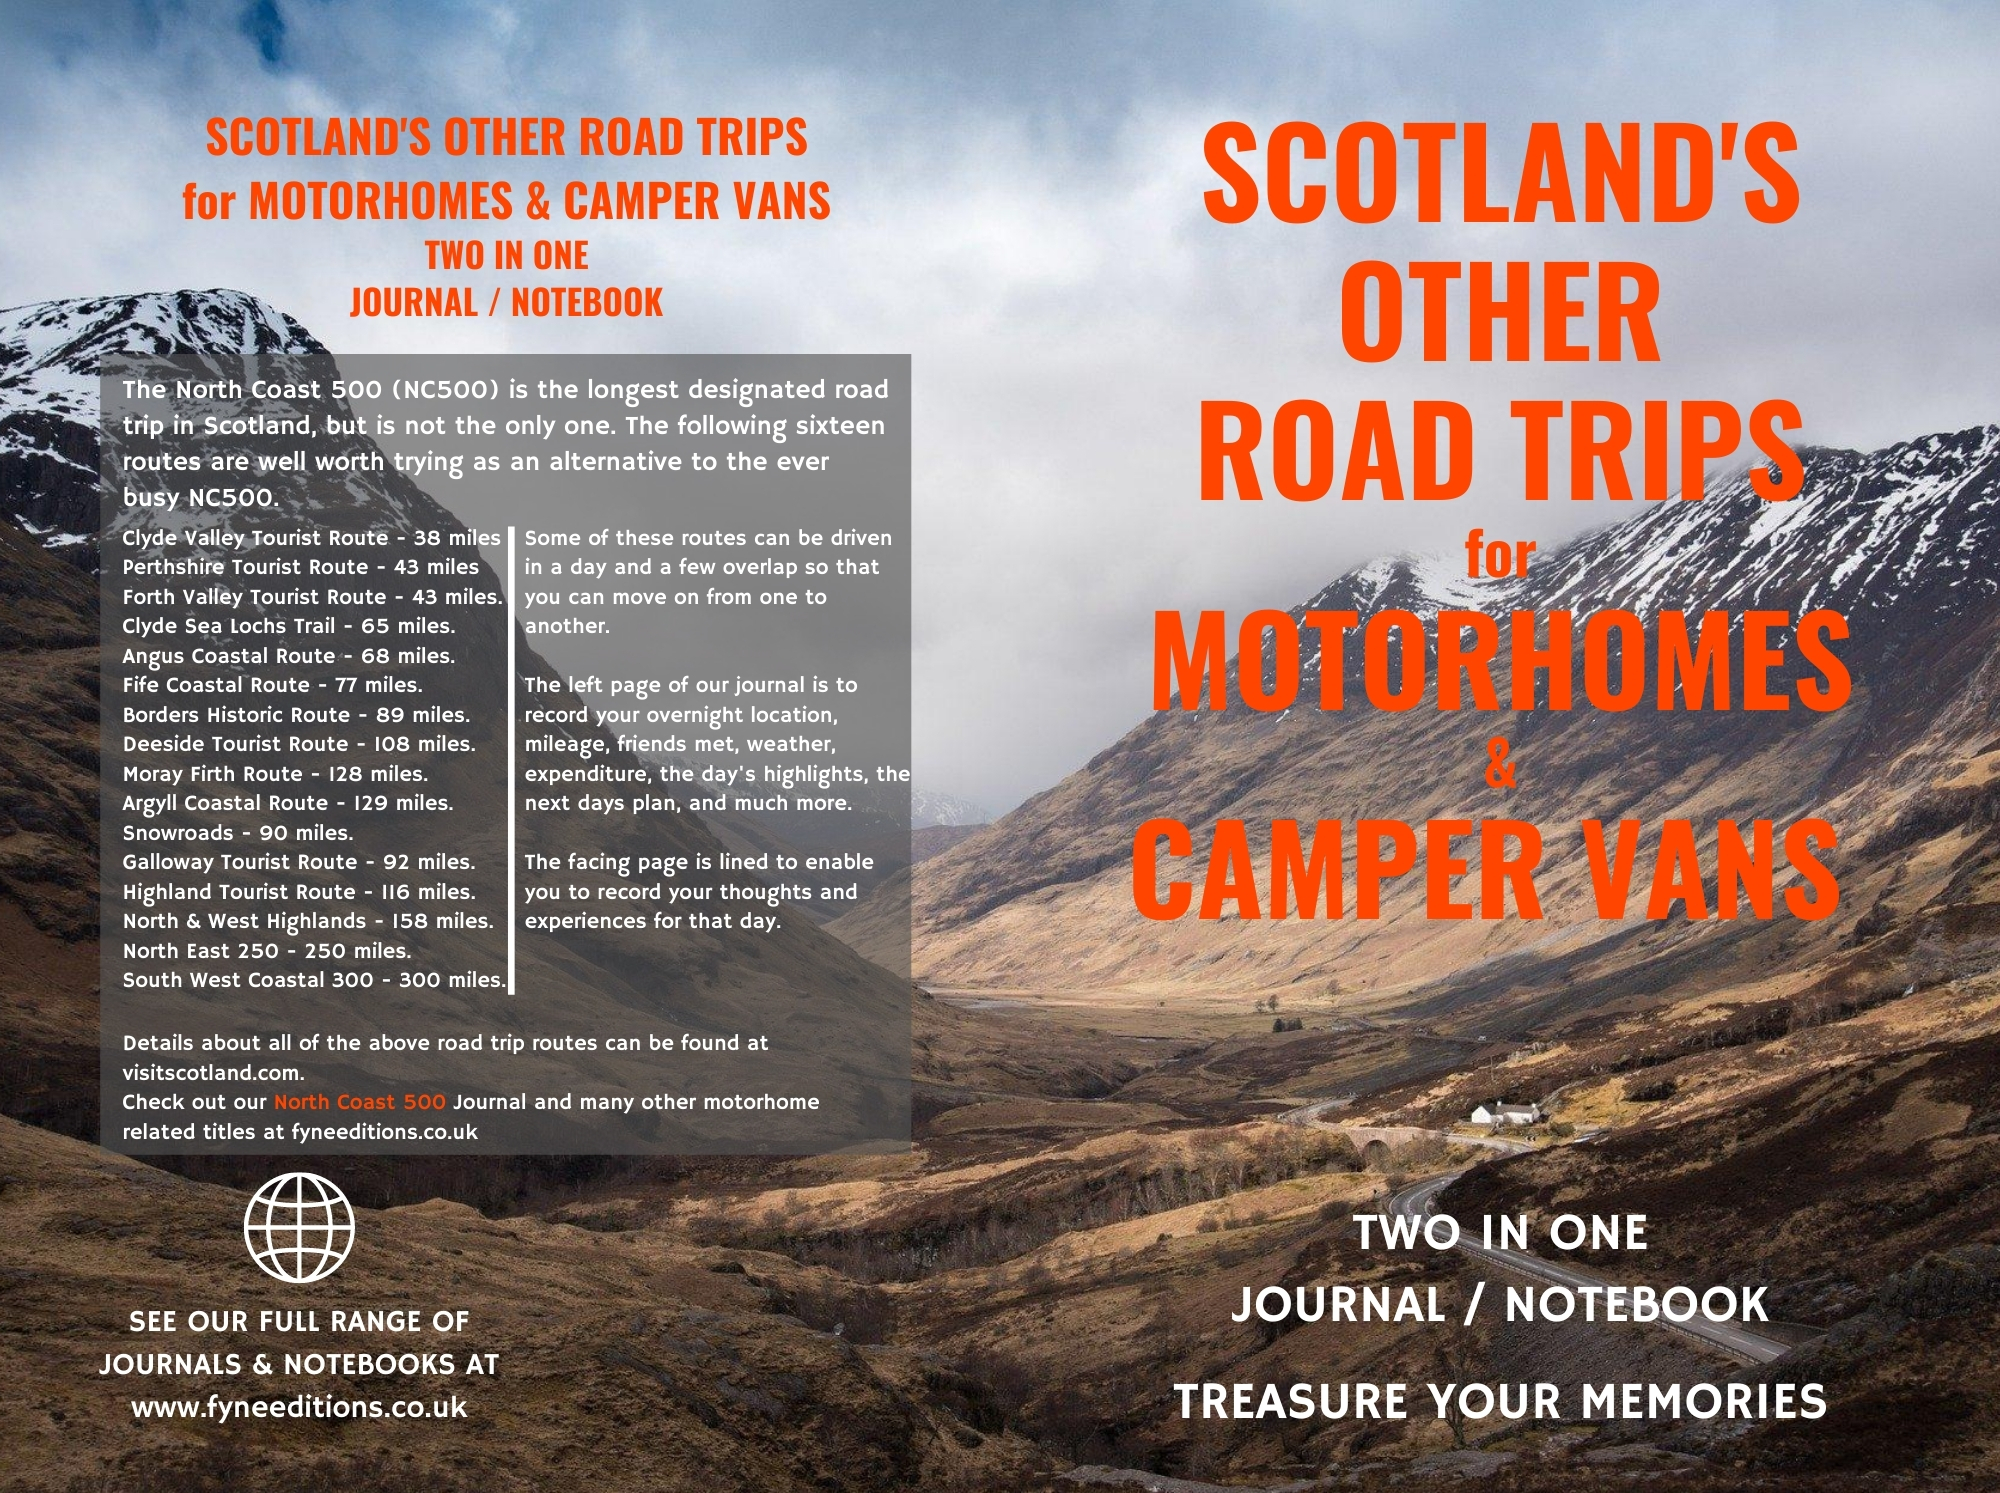 Scotland's Other Road Trips for Motorhomes Cover